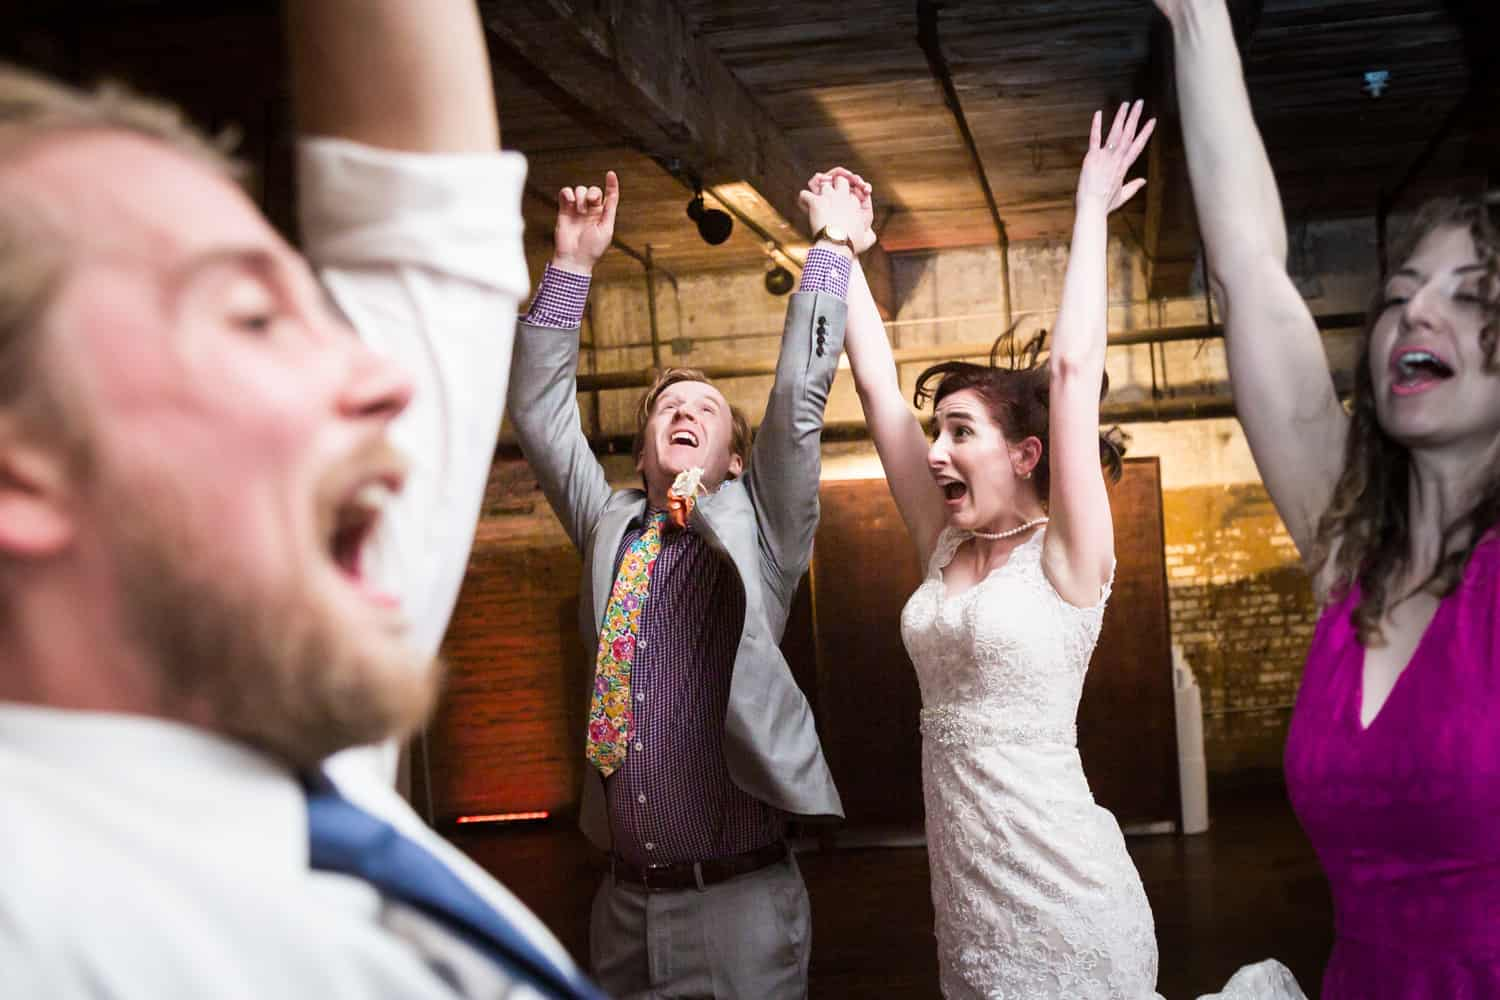 Bride and groom dancing with guests with arms raised at a Greenpoint Loft wedding